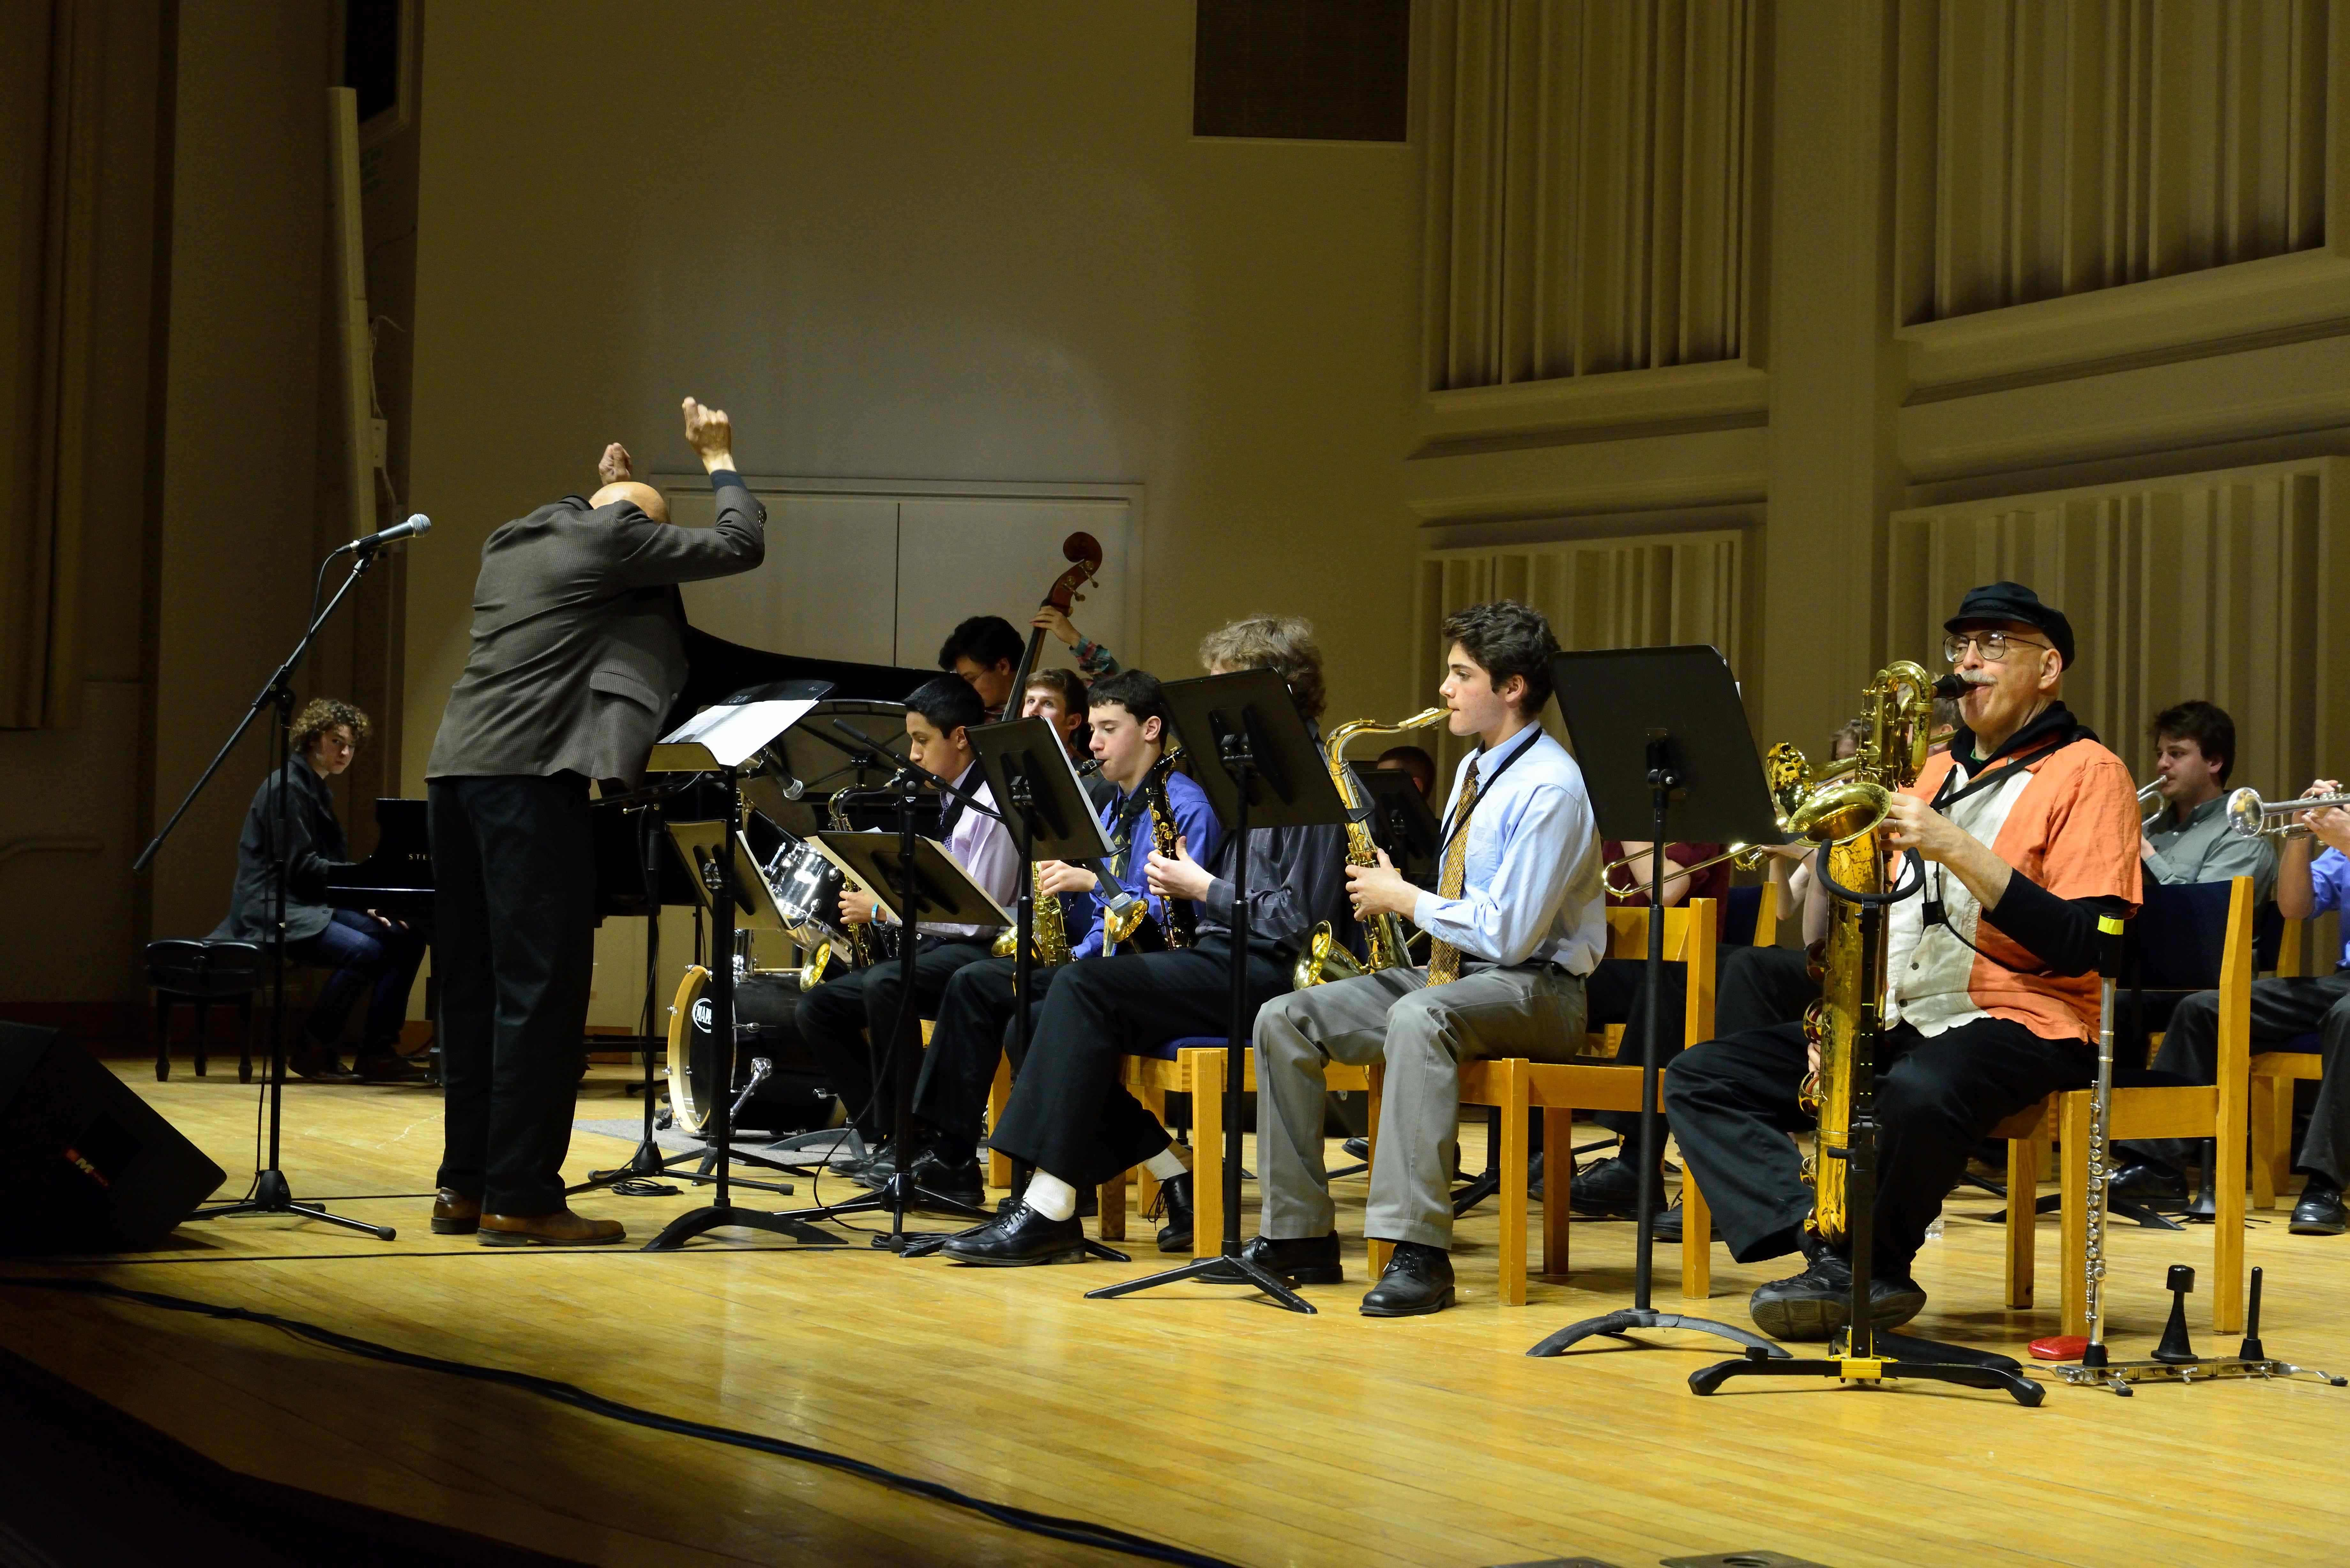 [The Bard College Community Jazz Orchestra]